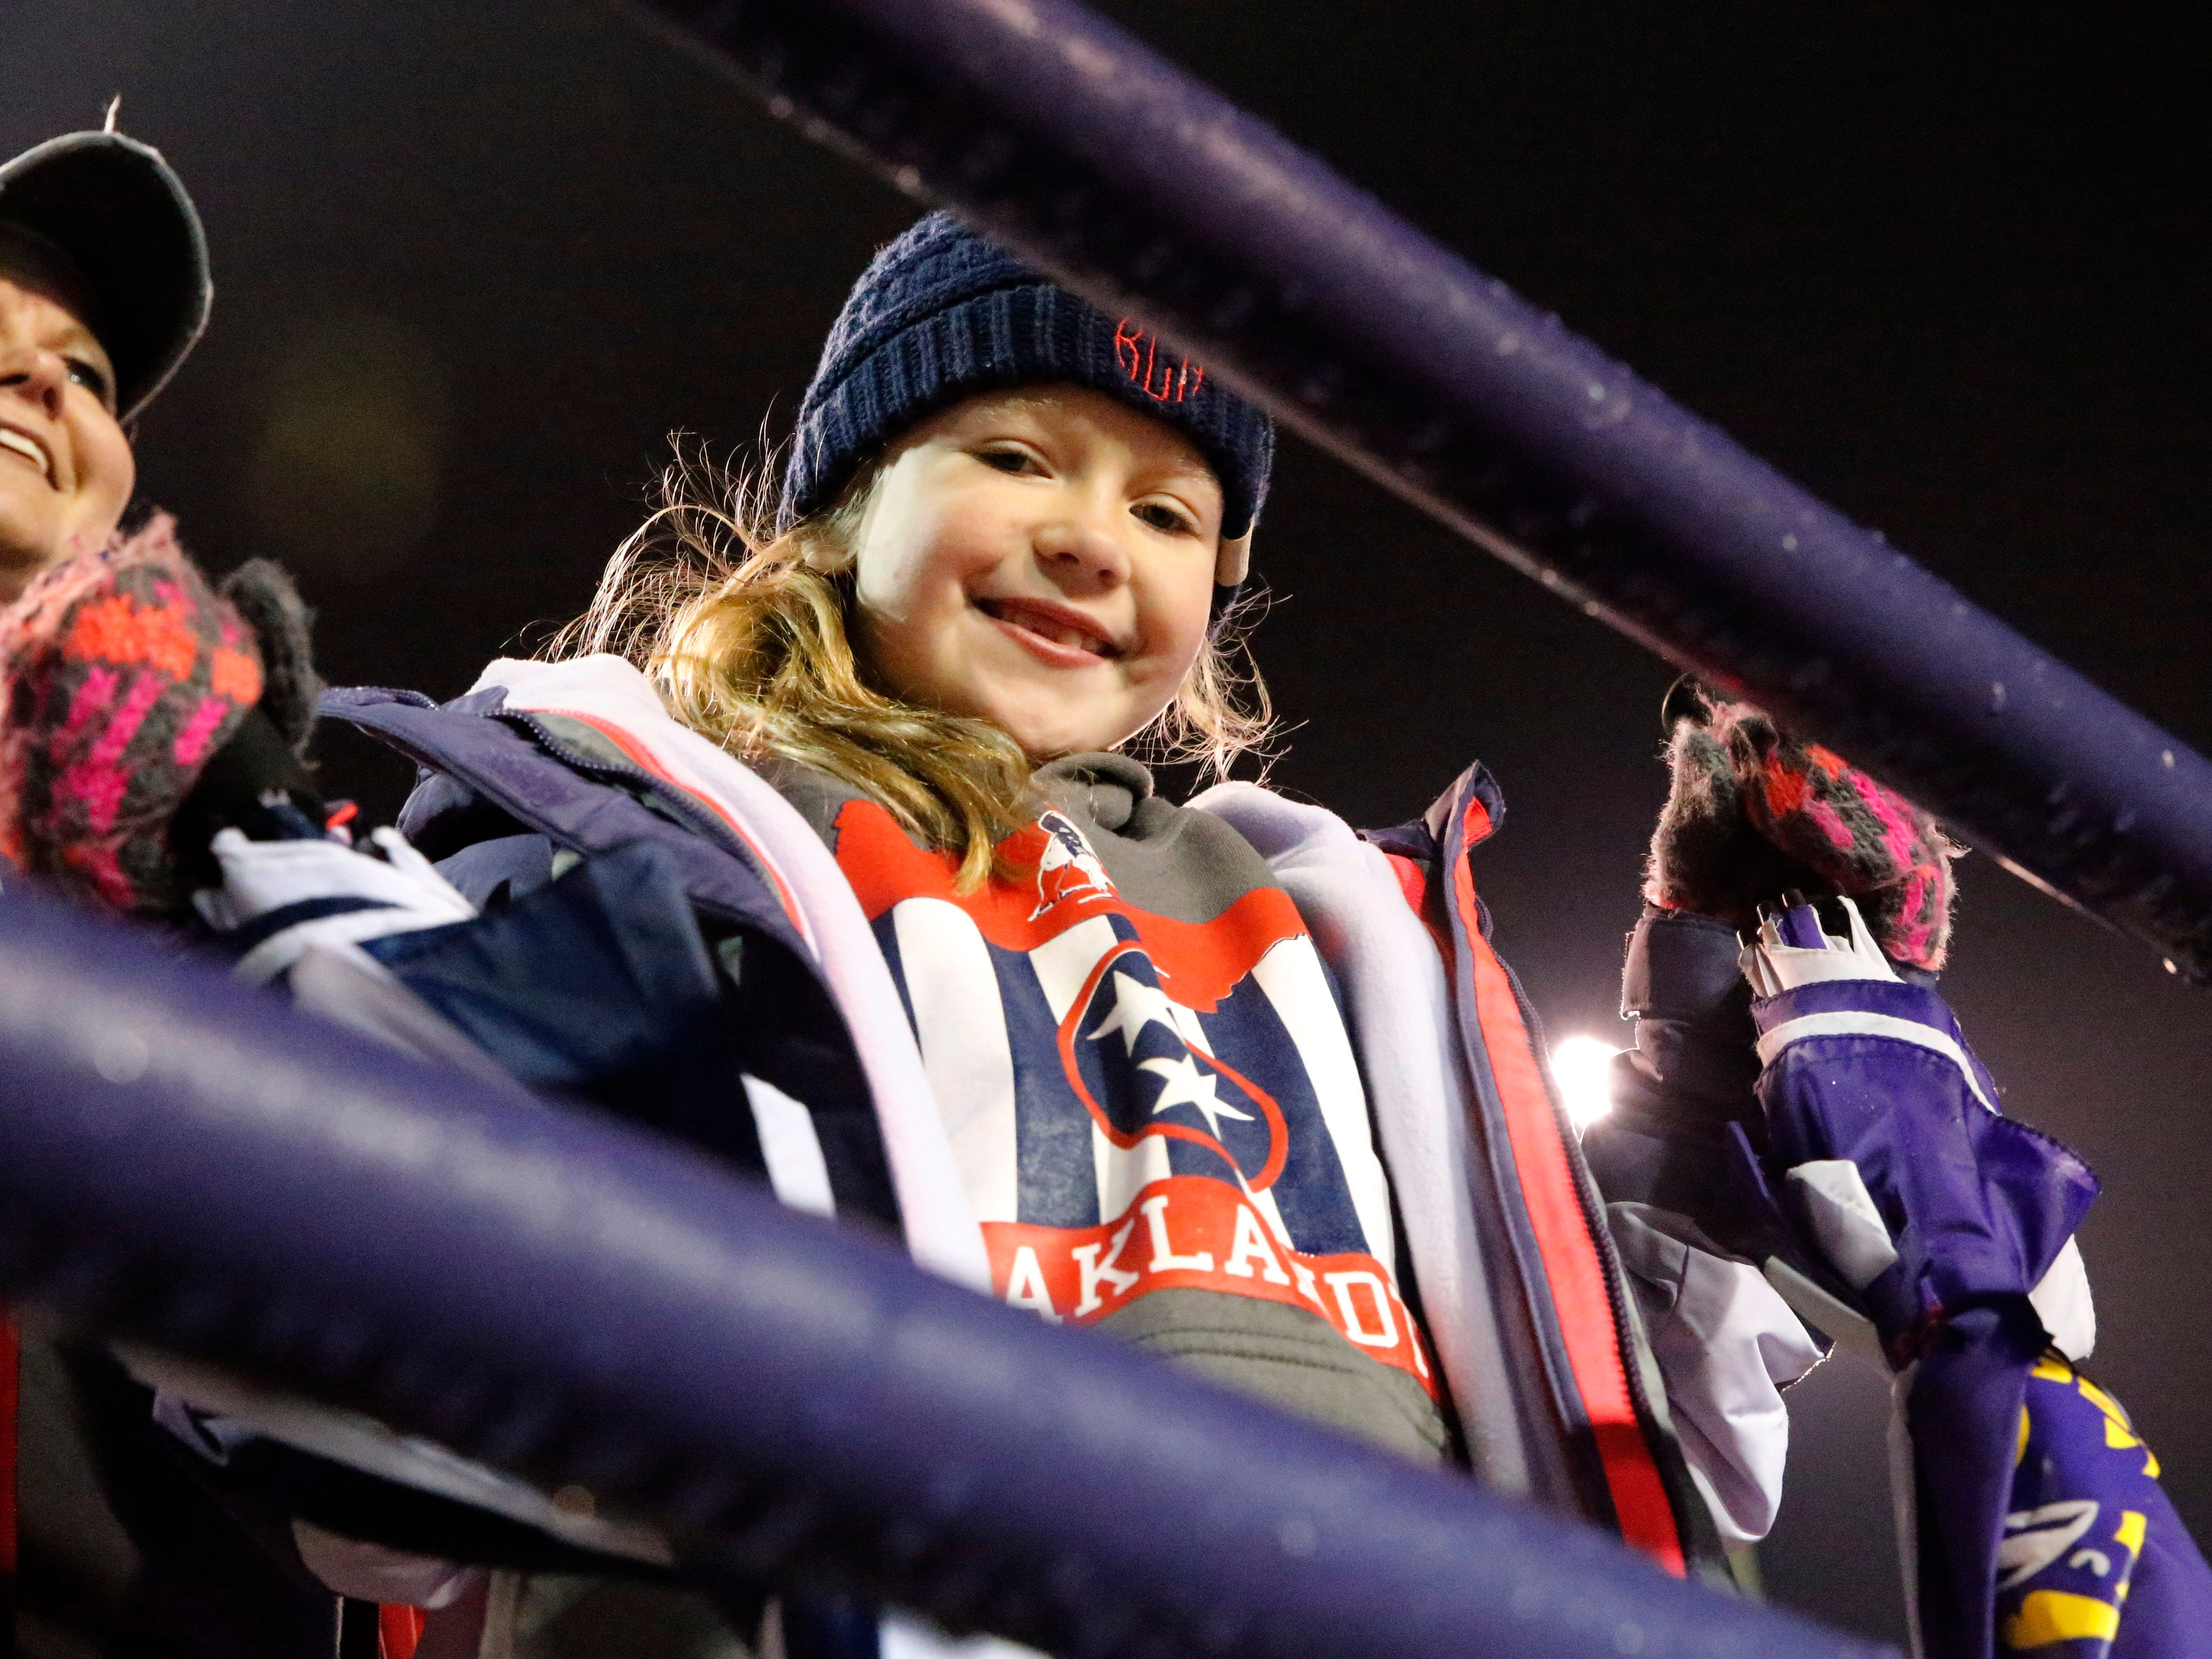 Oakland fan Kinley Creasy, the daughter of Oakland head coach Kevin Creasy is bundled up before the Class 6A BlueCross Bowl state championship at Tennessee Tech's Tucker Stadium in Cookeville, Tenn., on Thursday, Nov. 29, 2018.